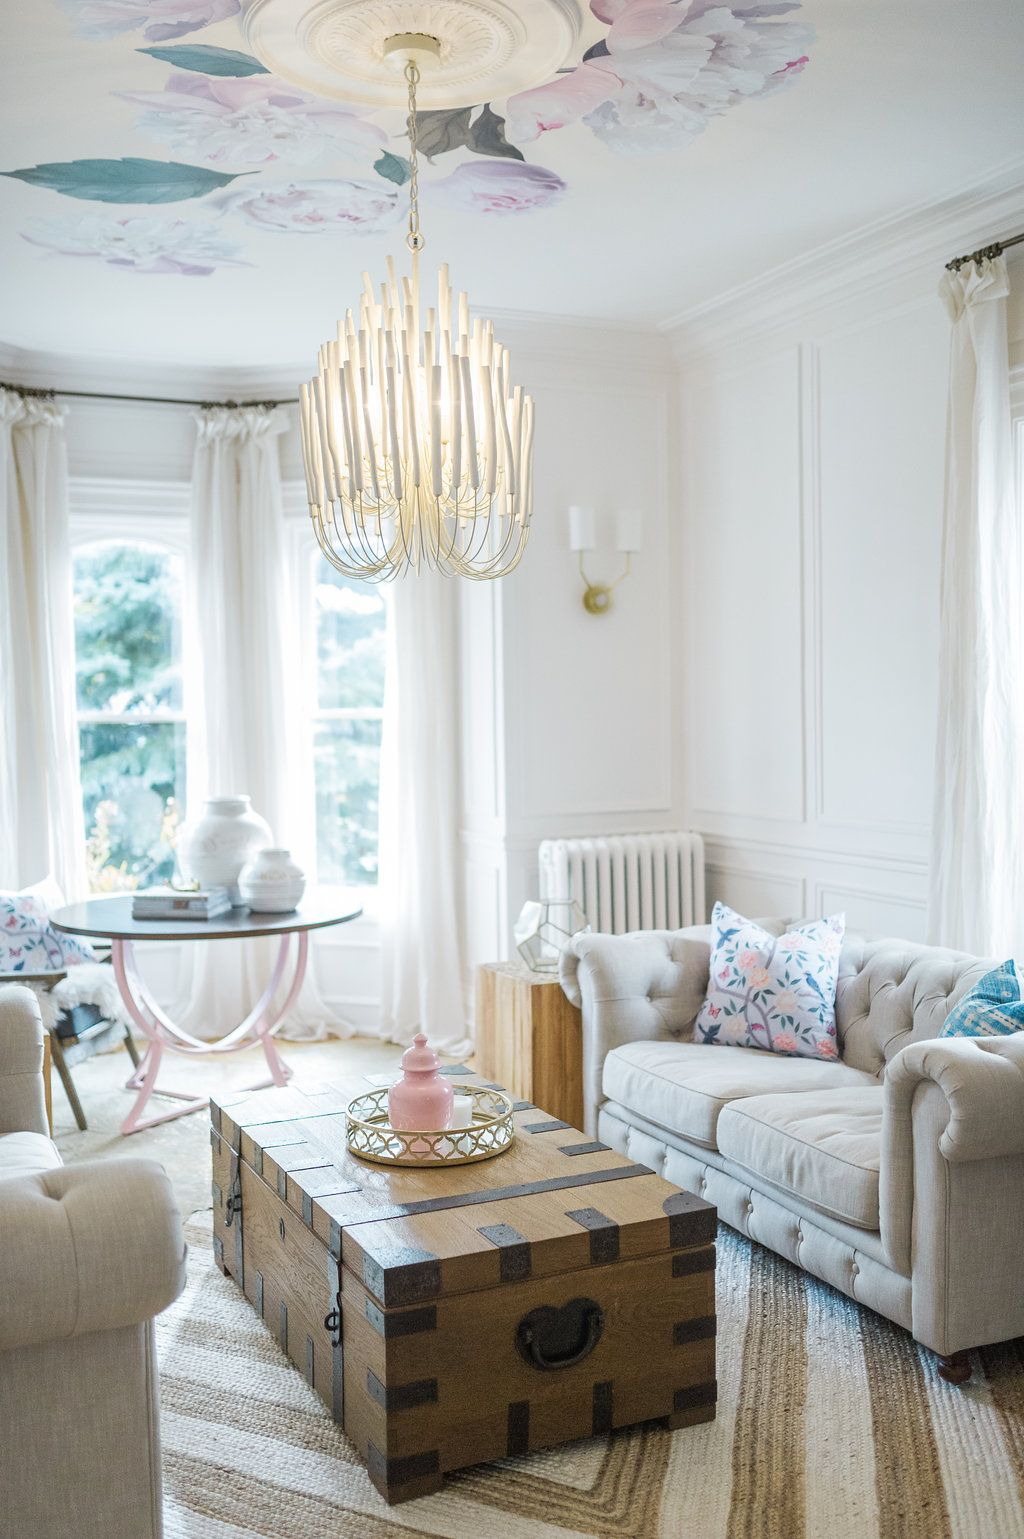 Modern Parisian Living Room Reveal: Wainscoting, Paint, Lighting